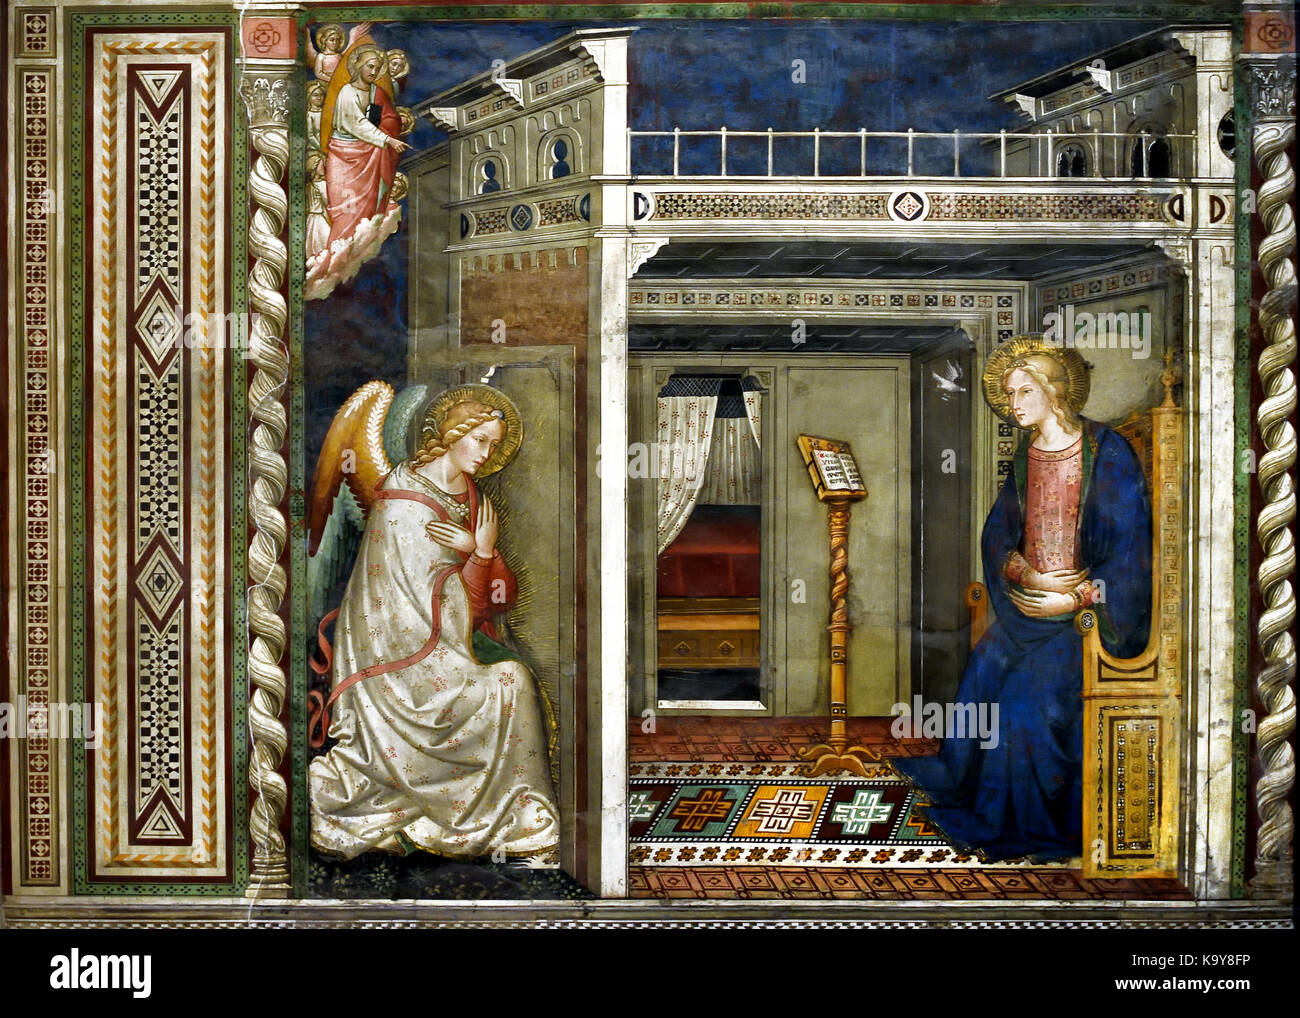 The Annunciation - Santa Maria Novella 1221 Church and Cloisters Principal Dominican church Florence Italy - Stock Image